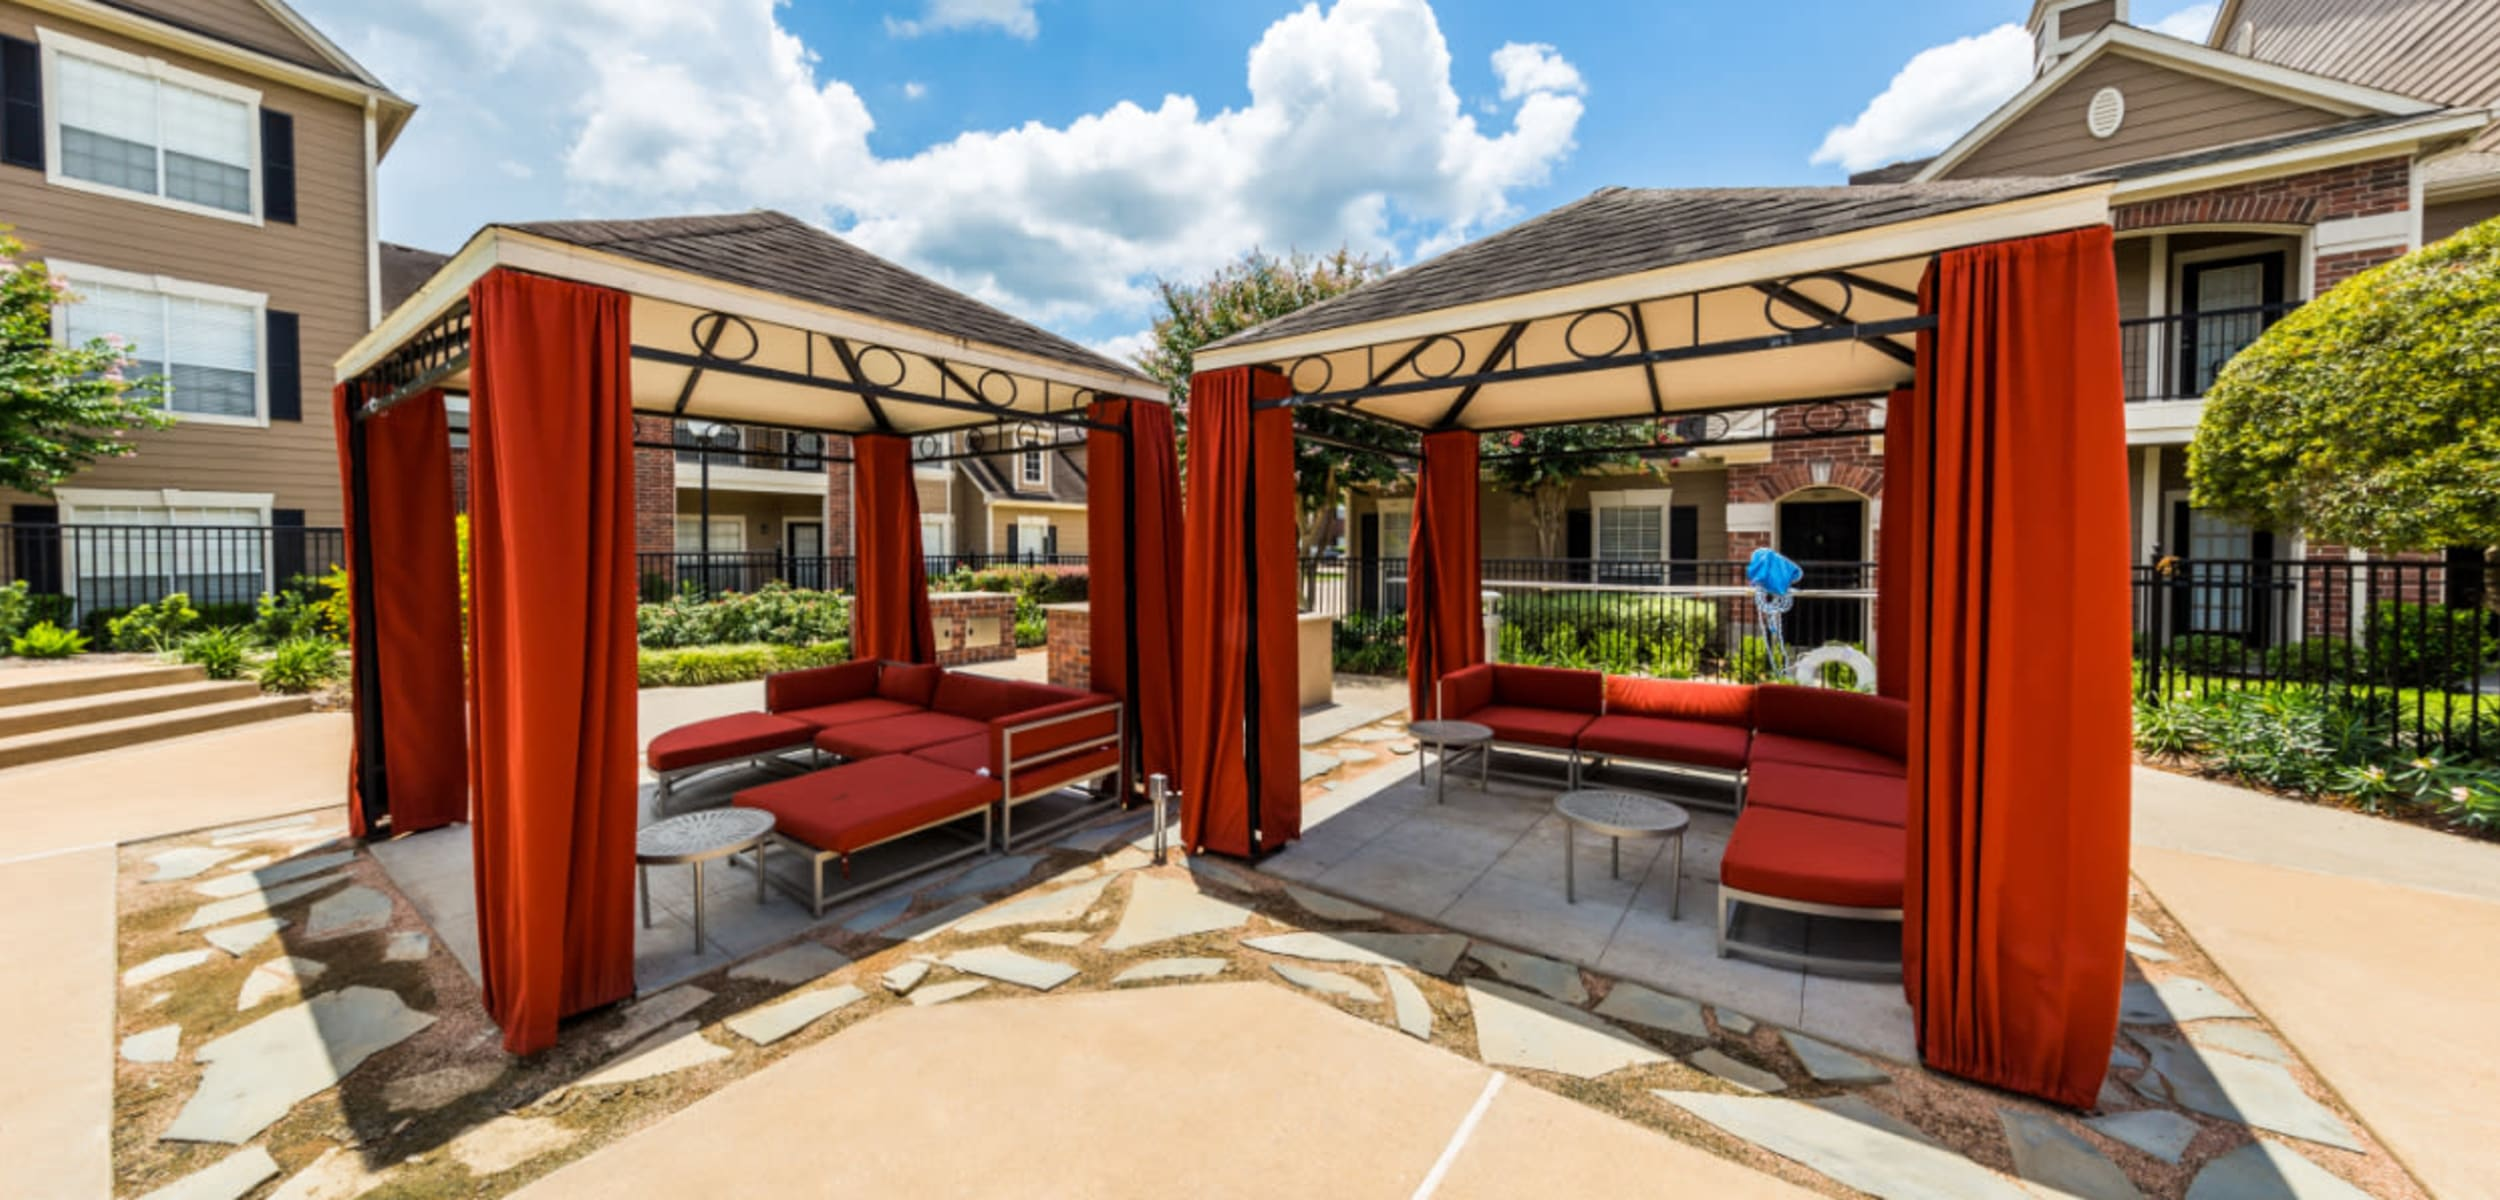 Gazebos with lounge couches and side tables at Marquis on Park Row in Houston, Texas